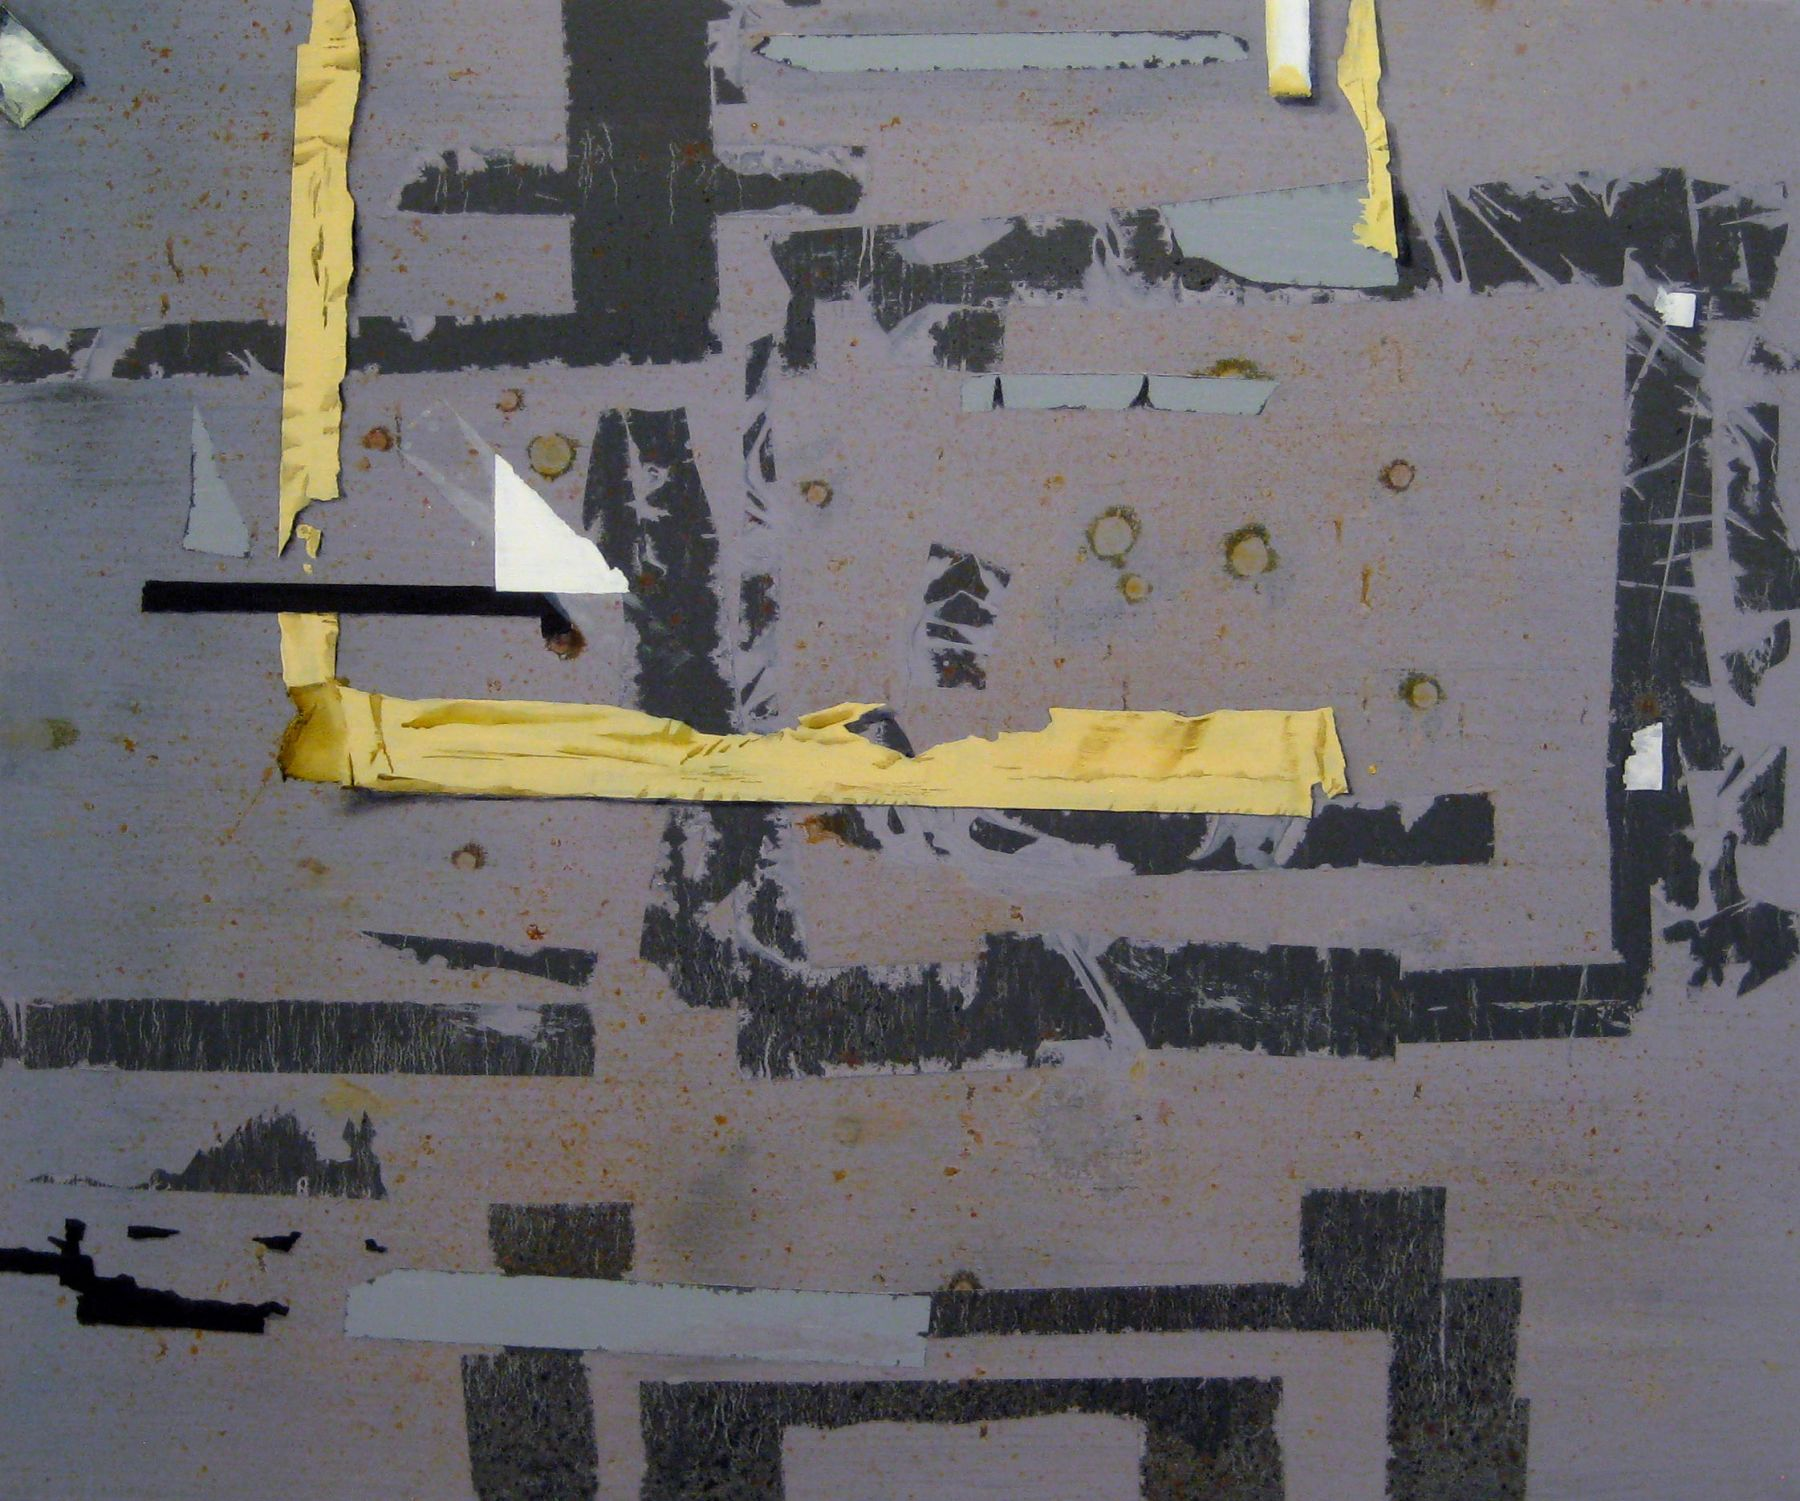 Hannah Cole History Painting #2 (For B.N.), 2009, 20h x 24 3/4w in, Acrylic on canvas, painting